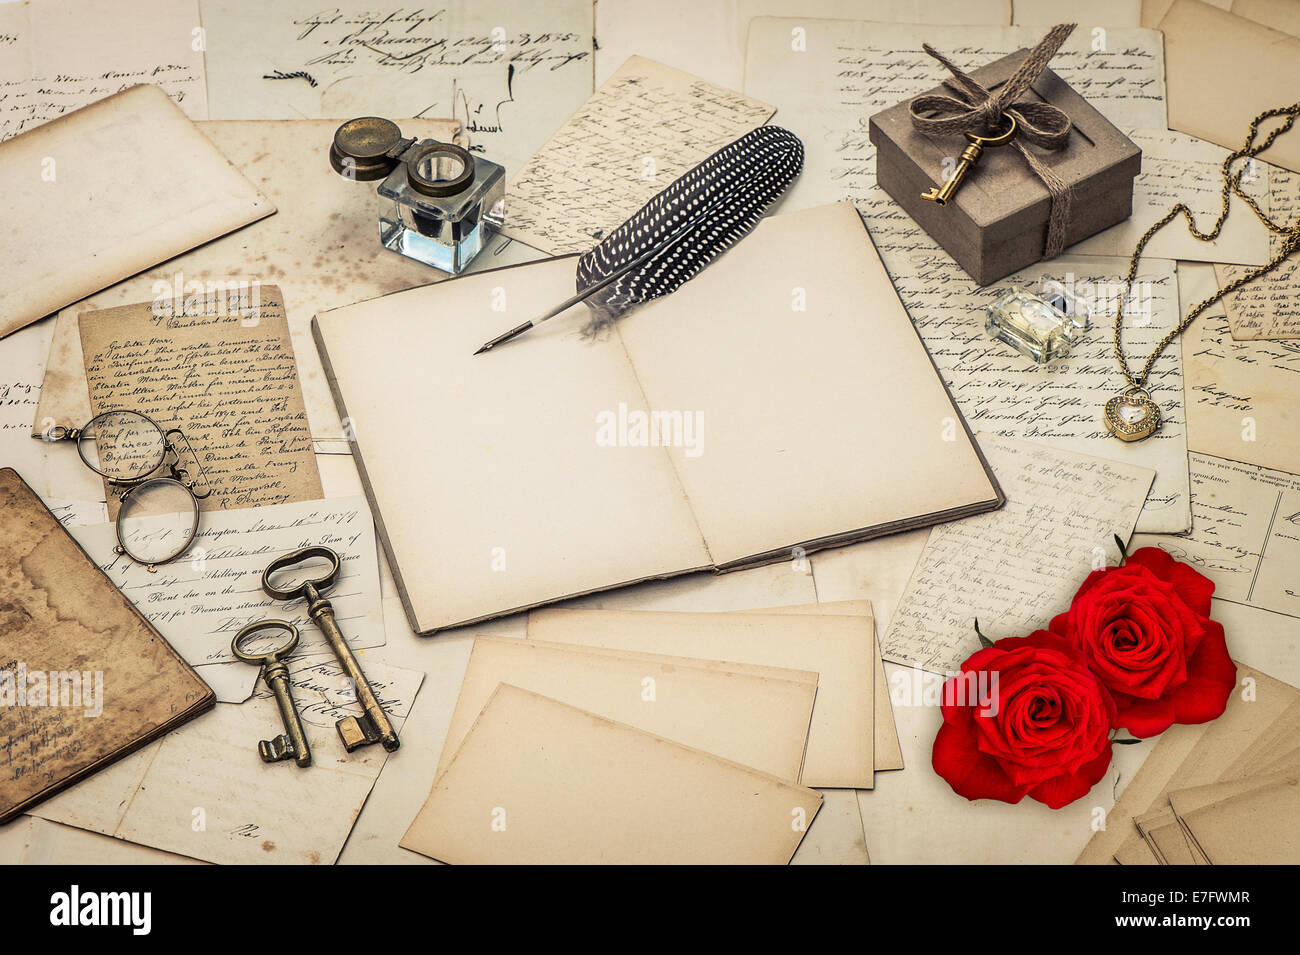 stock photo diary book old love letters and red rose flowers nostalgic sentimental background retro style toned picture